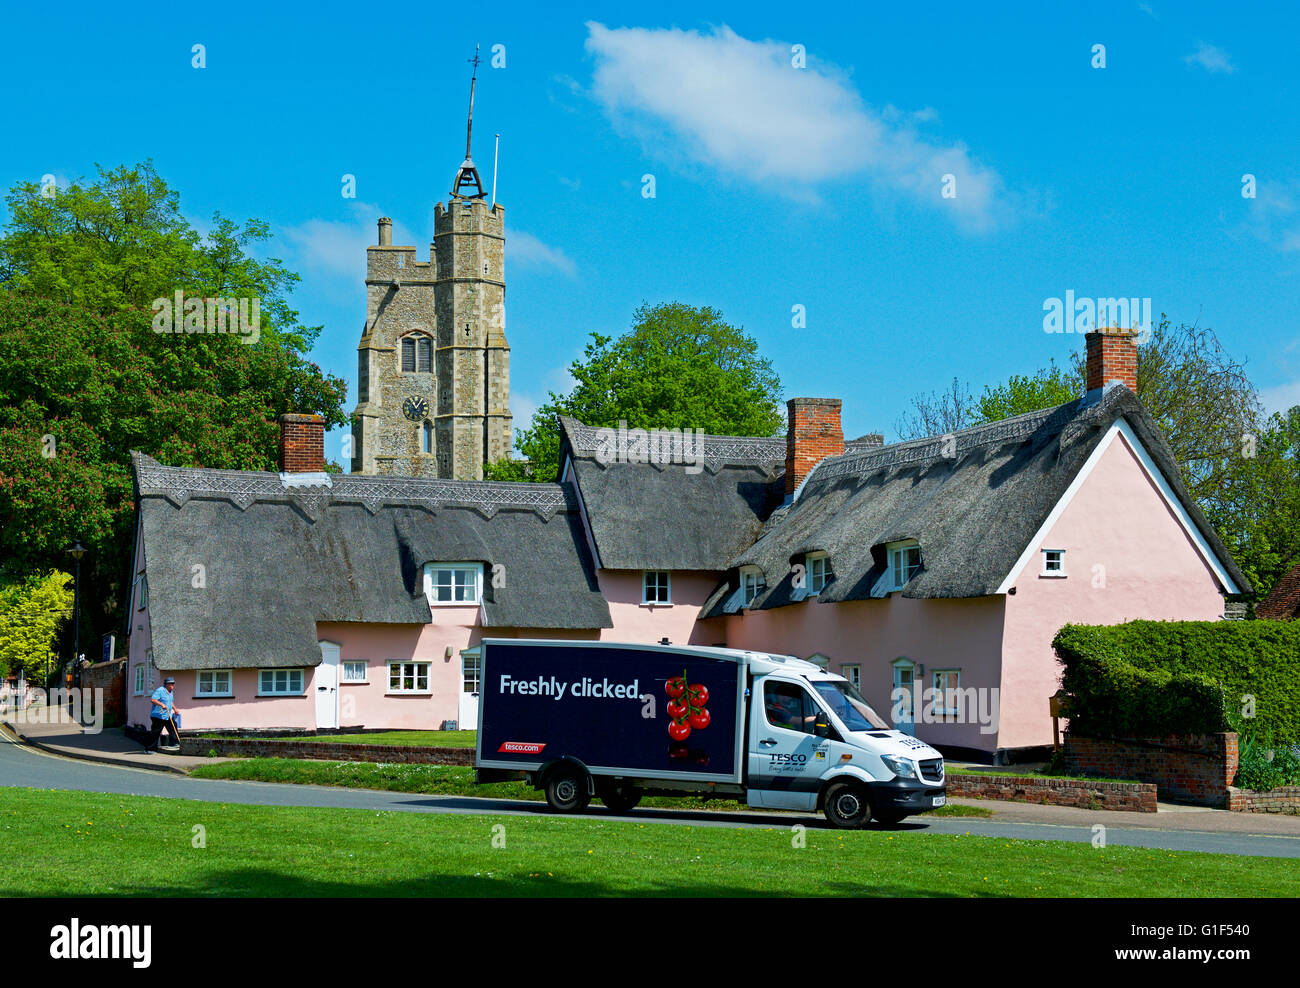 Tesco delivery van in the village of Cavendish, Suffolk, England UK - Stock Image